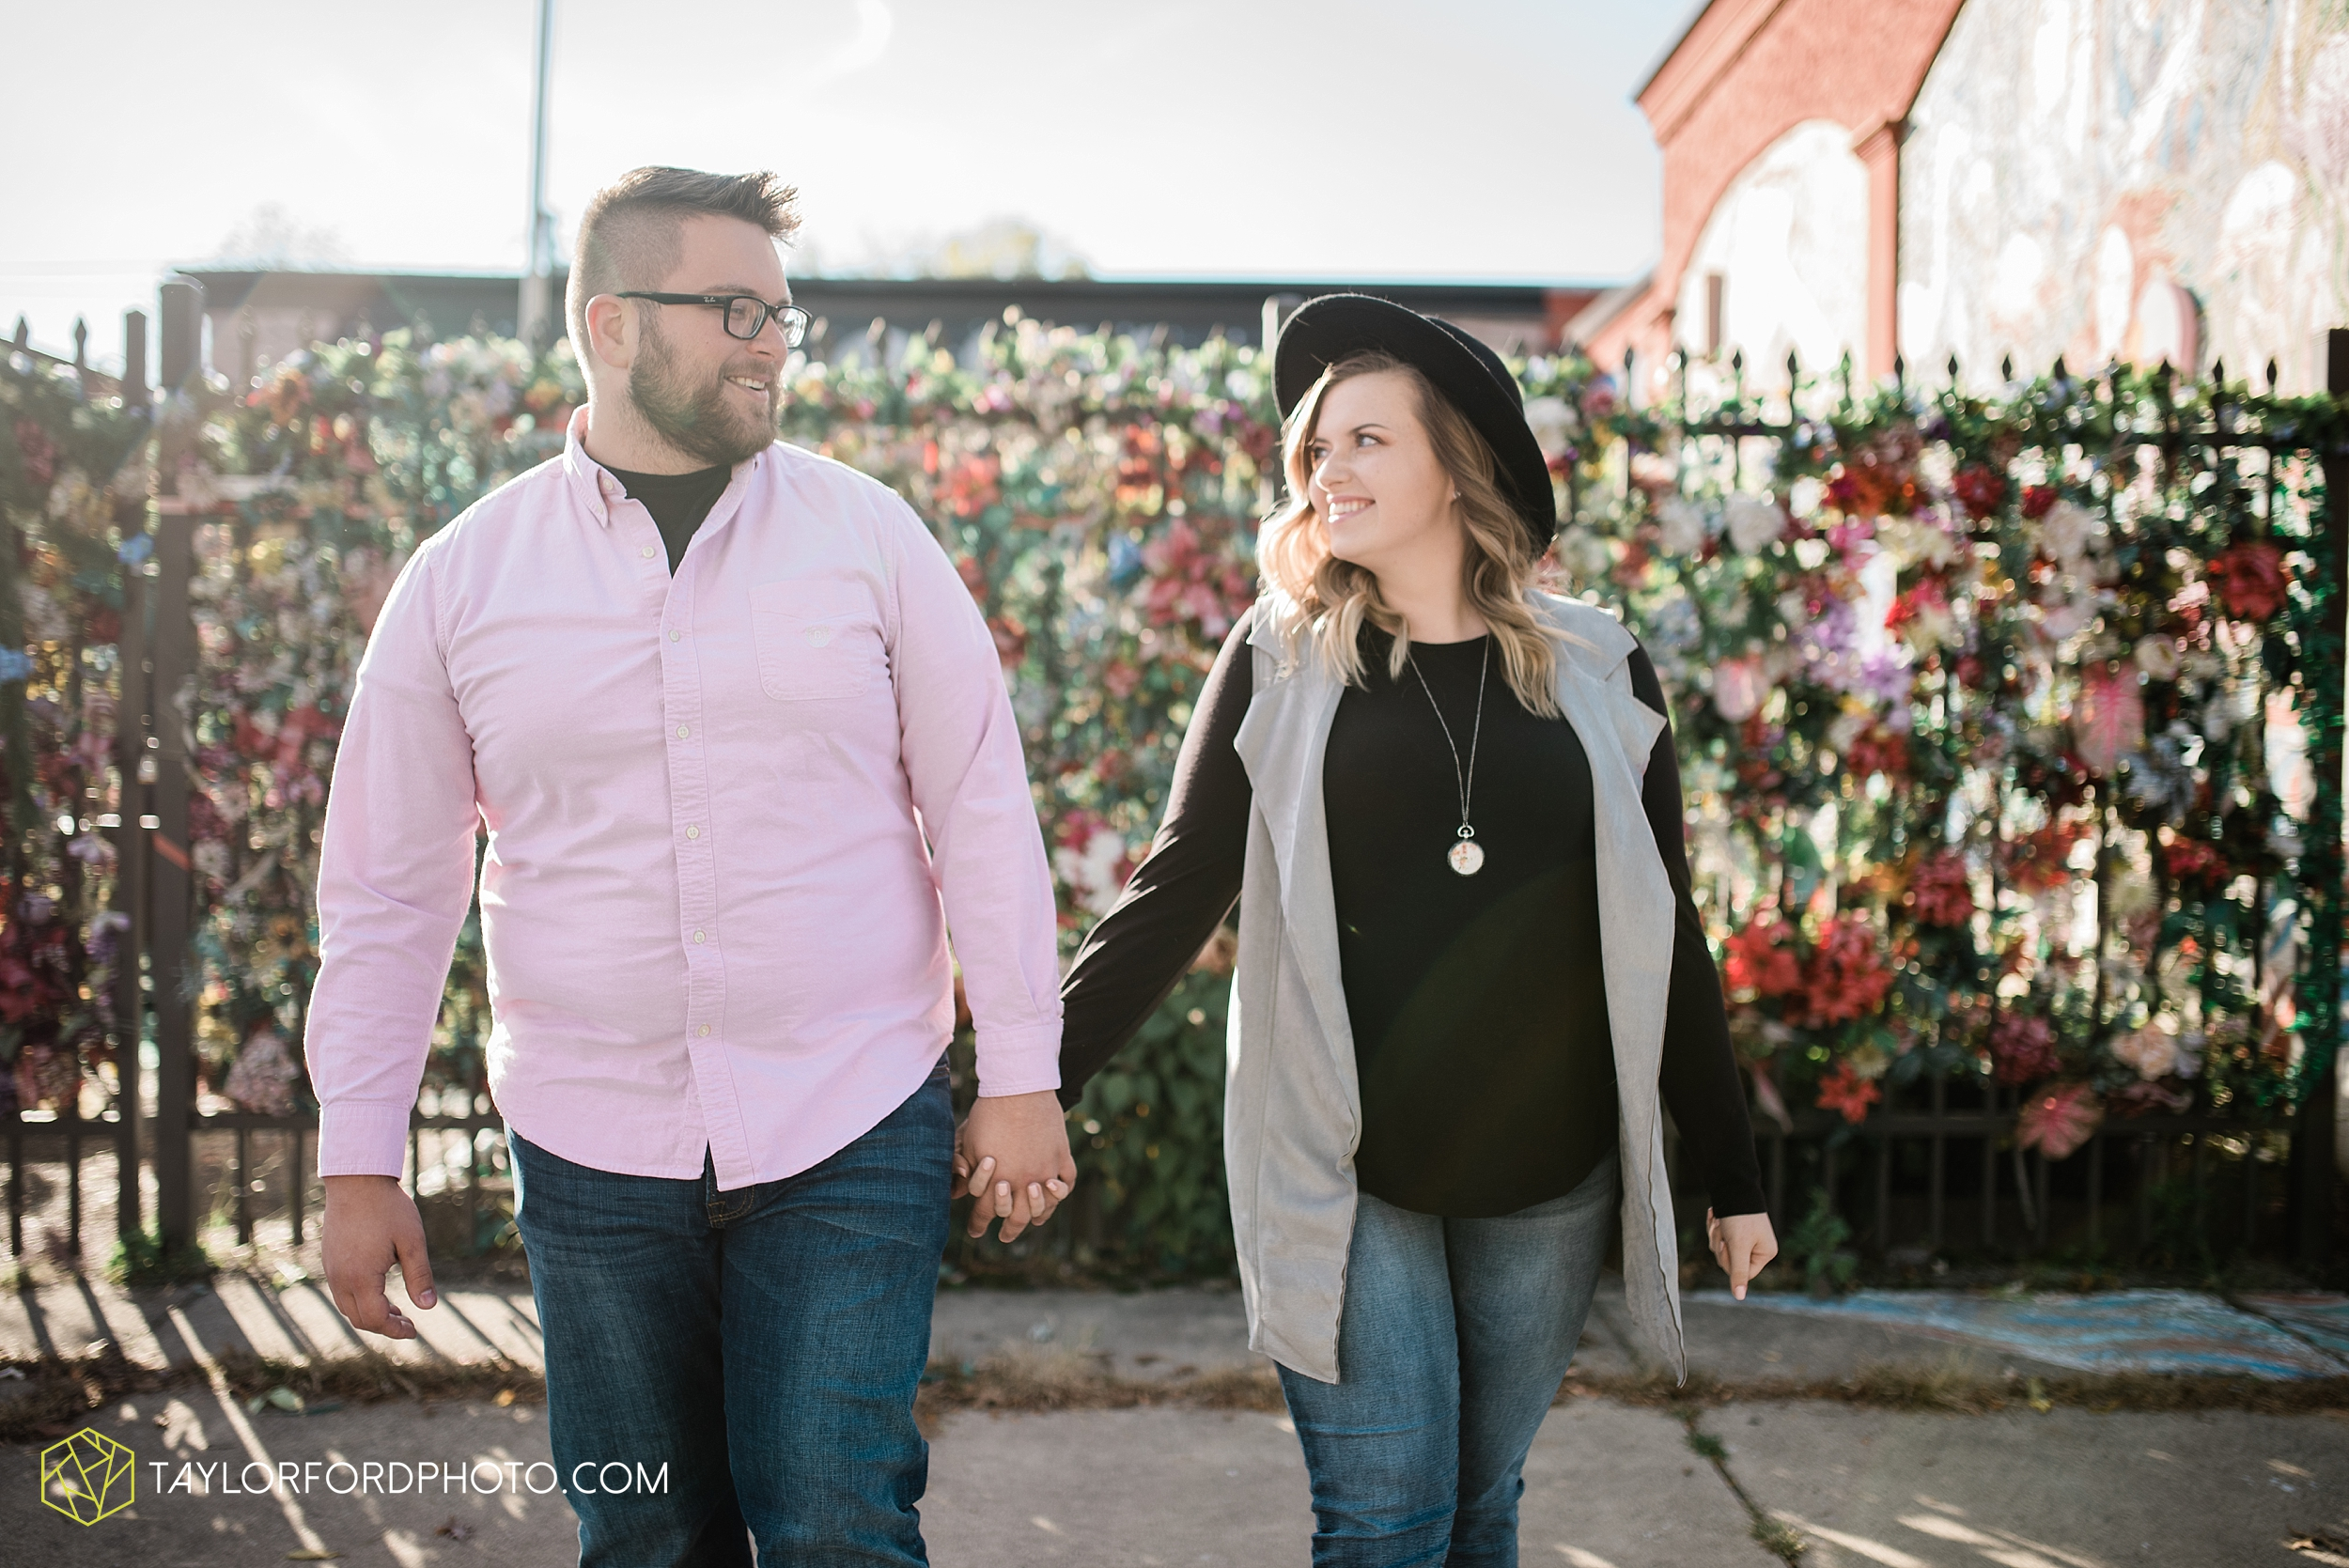 downtown-fort-wayne-engagement-foster-park-bravas-wunderkamer-fox-island-quarry-photographer-taylor-ford-photography_0962.jpg